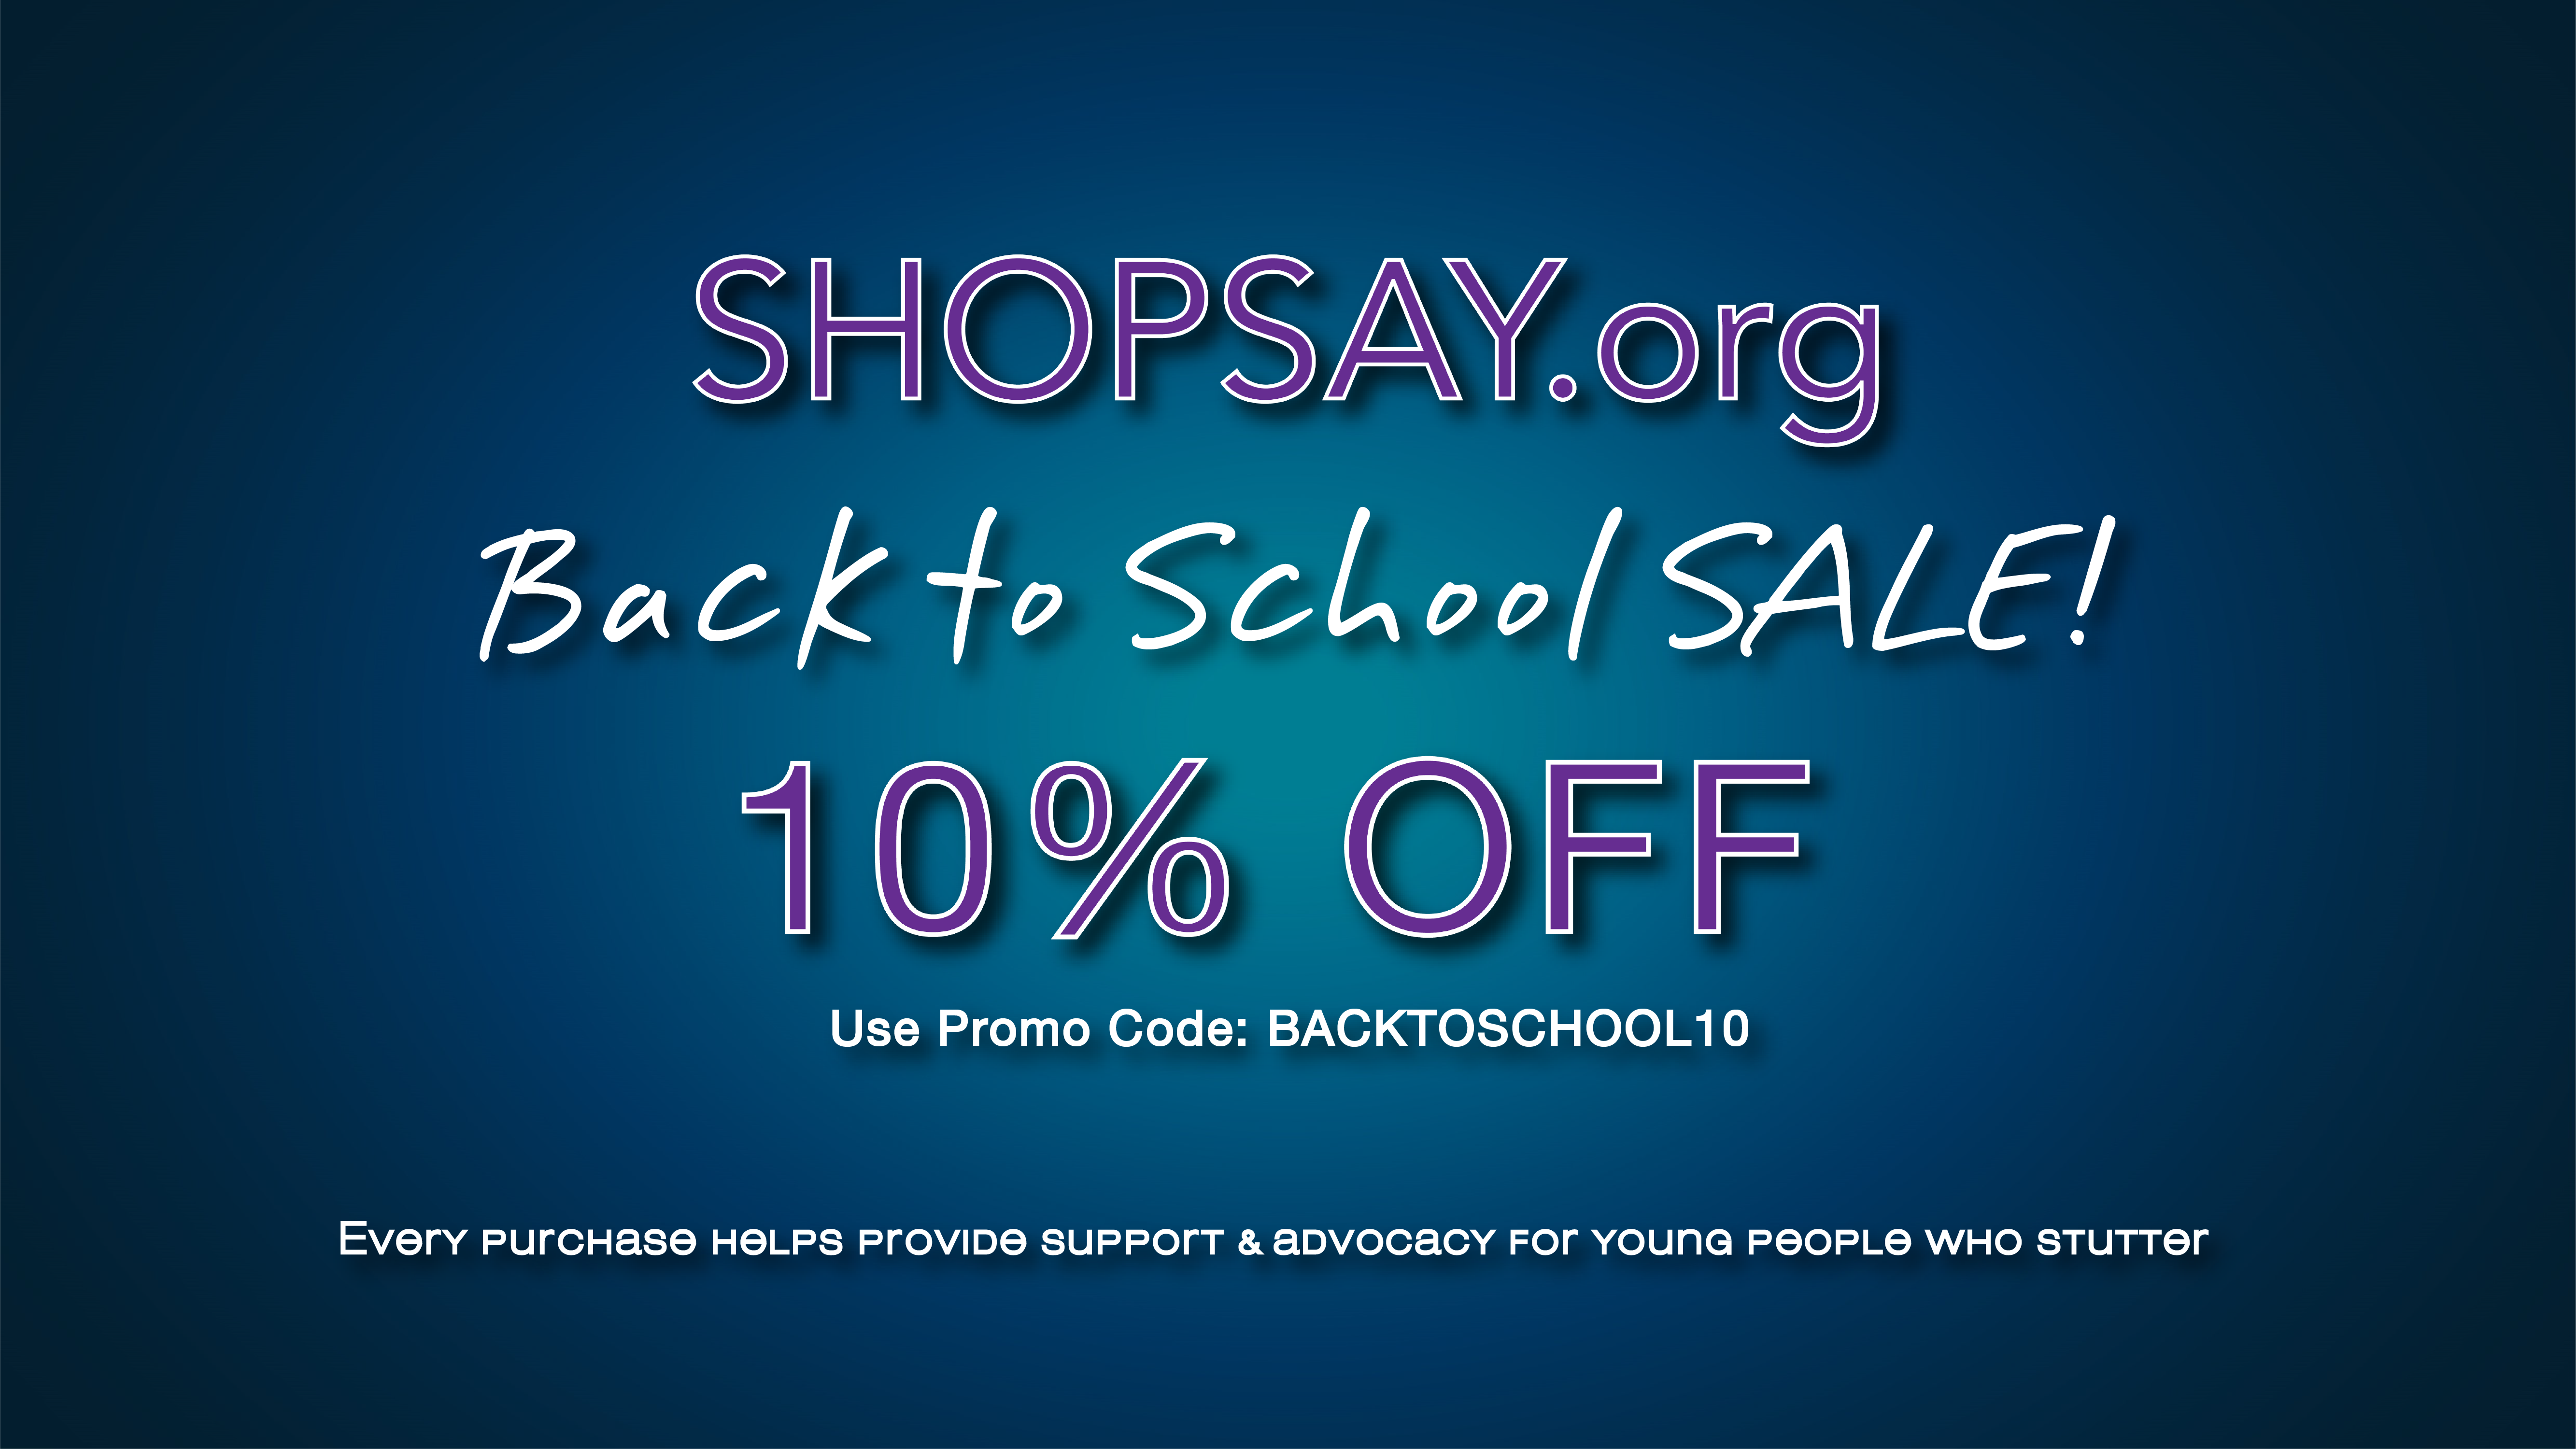 The NEW ShopSAY.org!